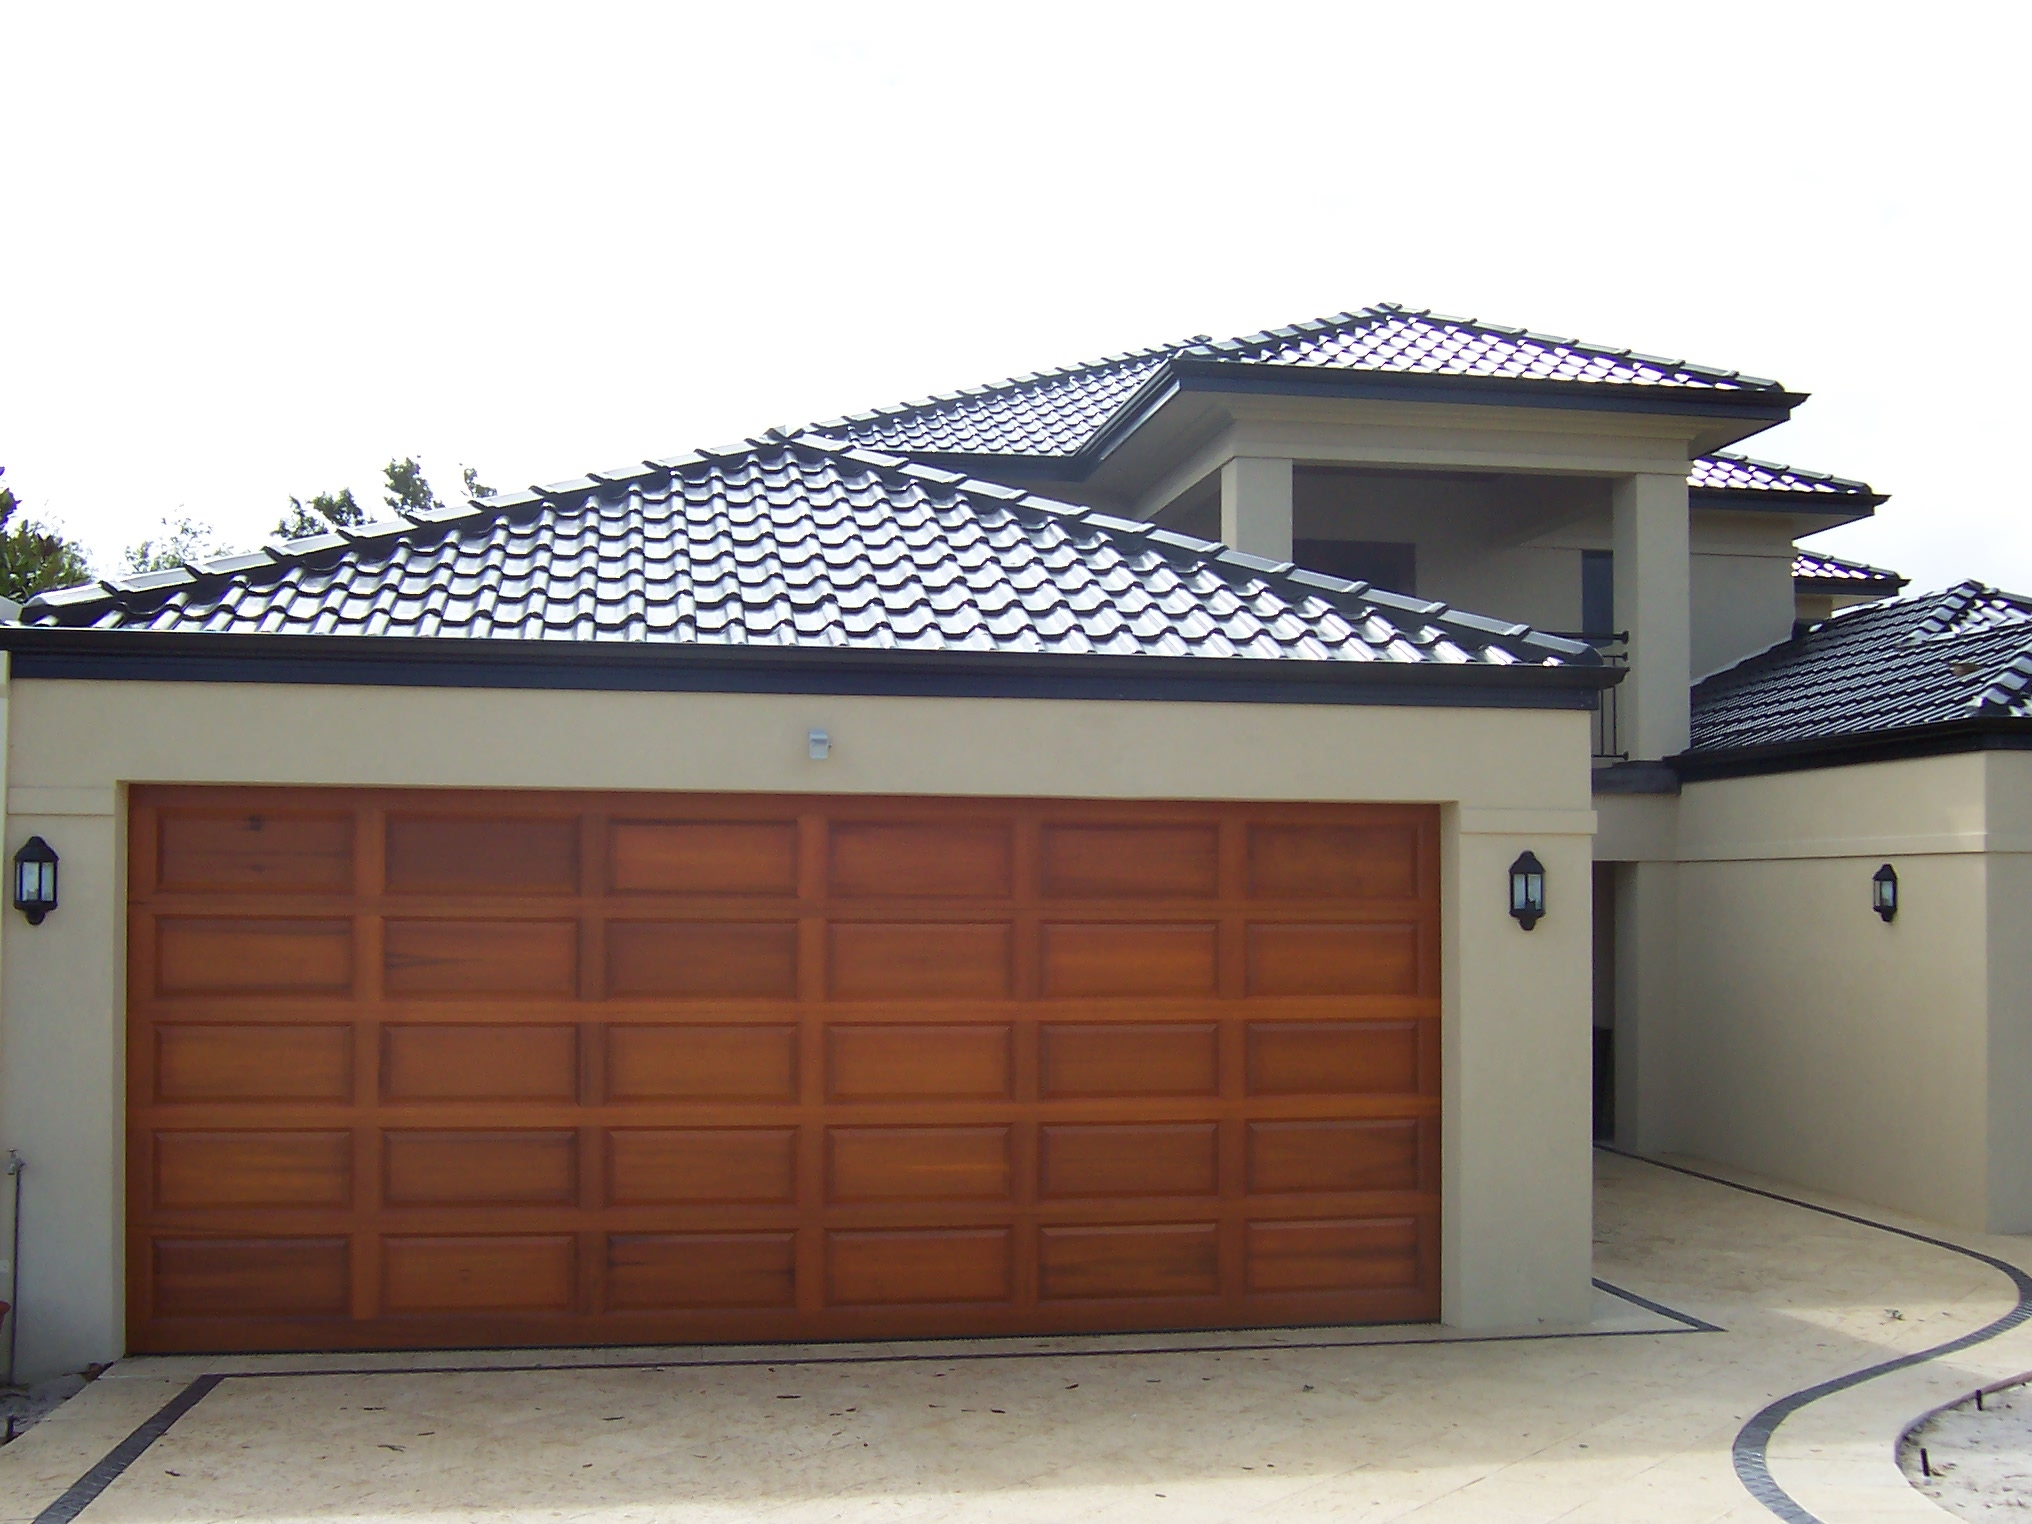 Attractive Garage Door Specialists U2013 What Do They Do?